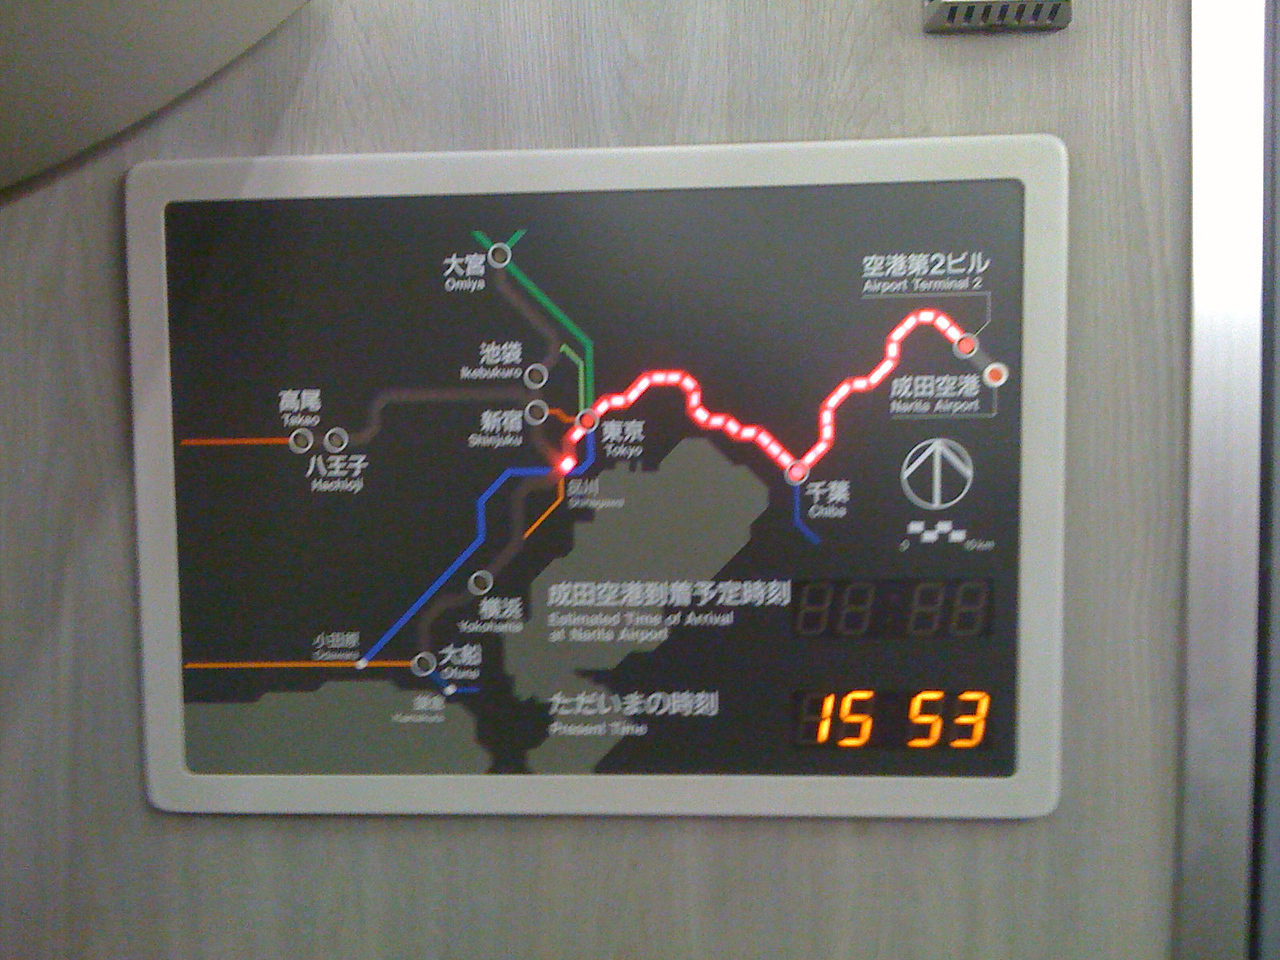 The red lights indicate our progress from the Narita airport (red dot on the right side). Now an hour and a half into our trip, we had just left the Tokyo station with Shinagawa as our final stop.